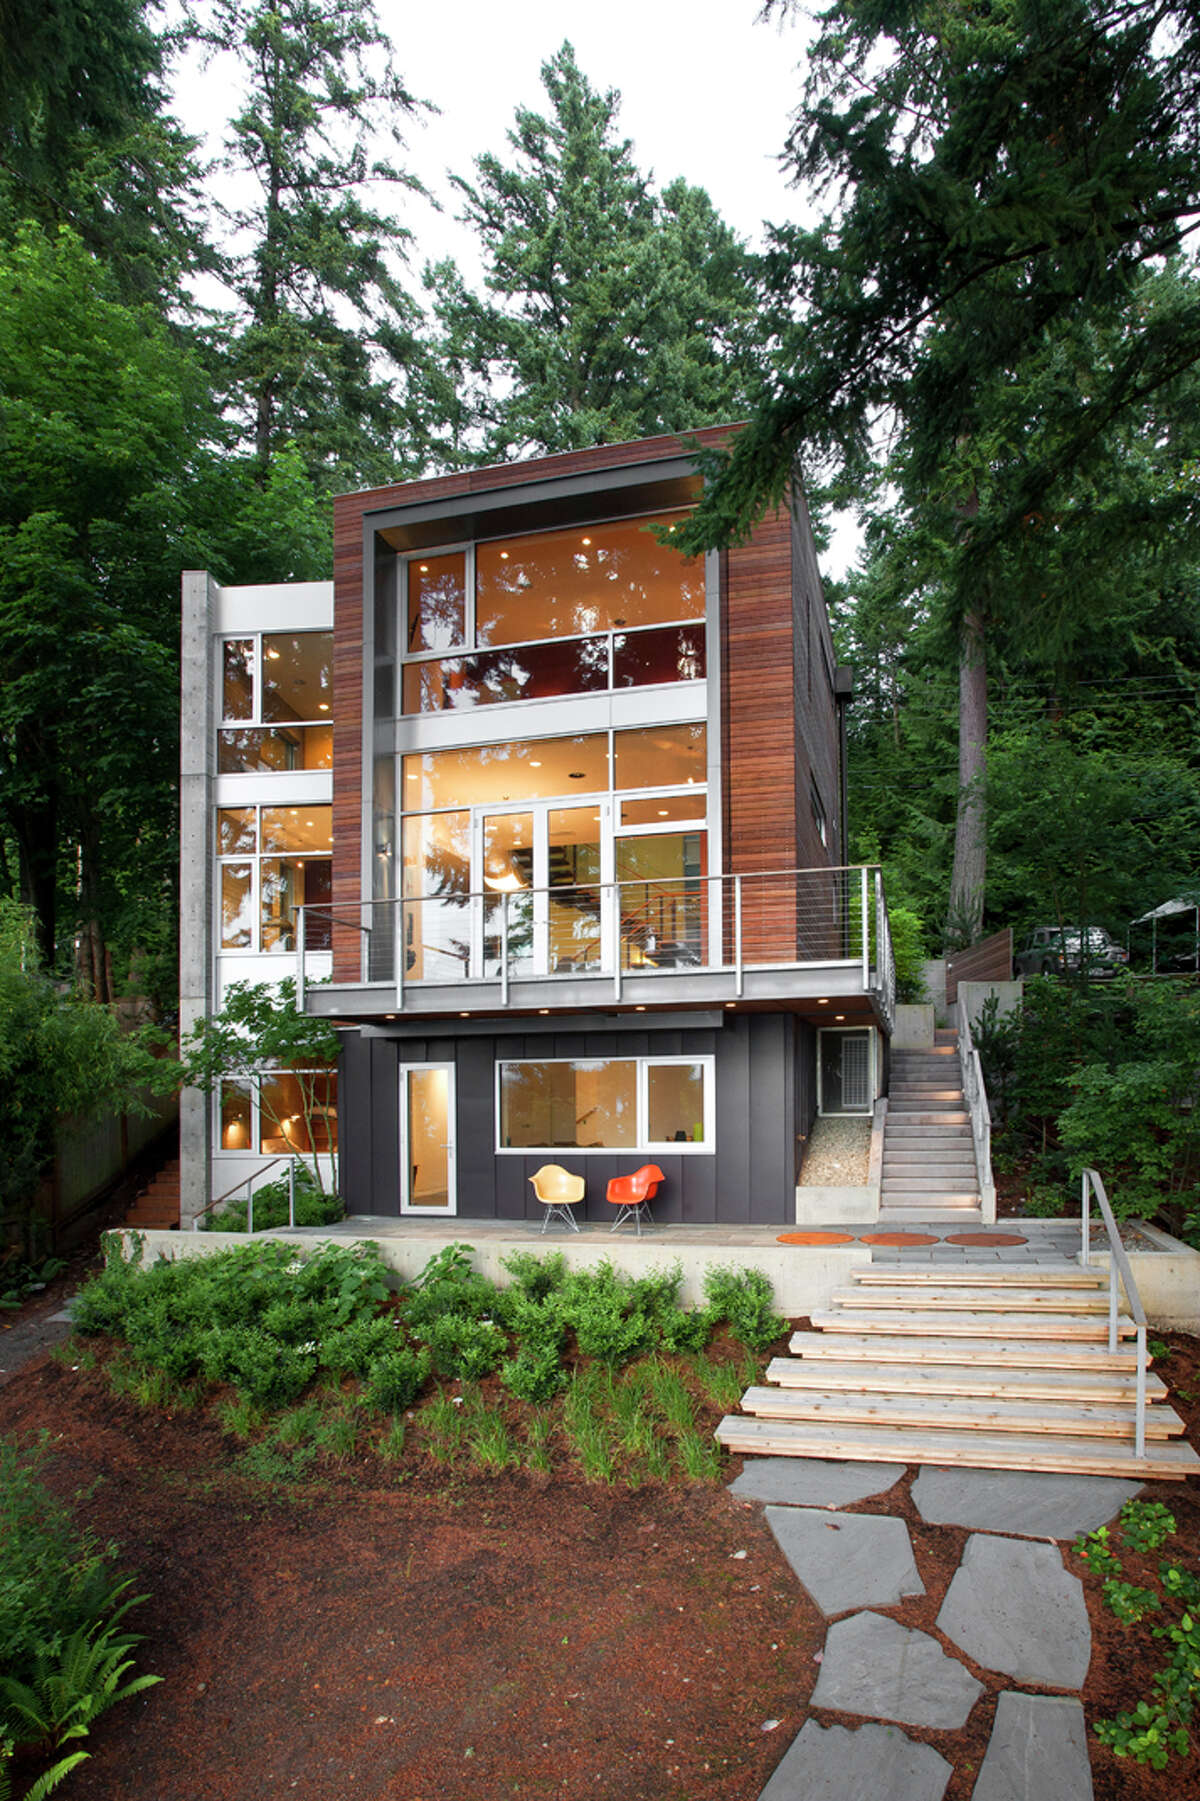 Contemporary architecture fans can walk through eight area homes on Sept. 7 for $30, not counting gas and ferry fares.